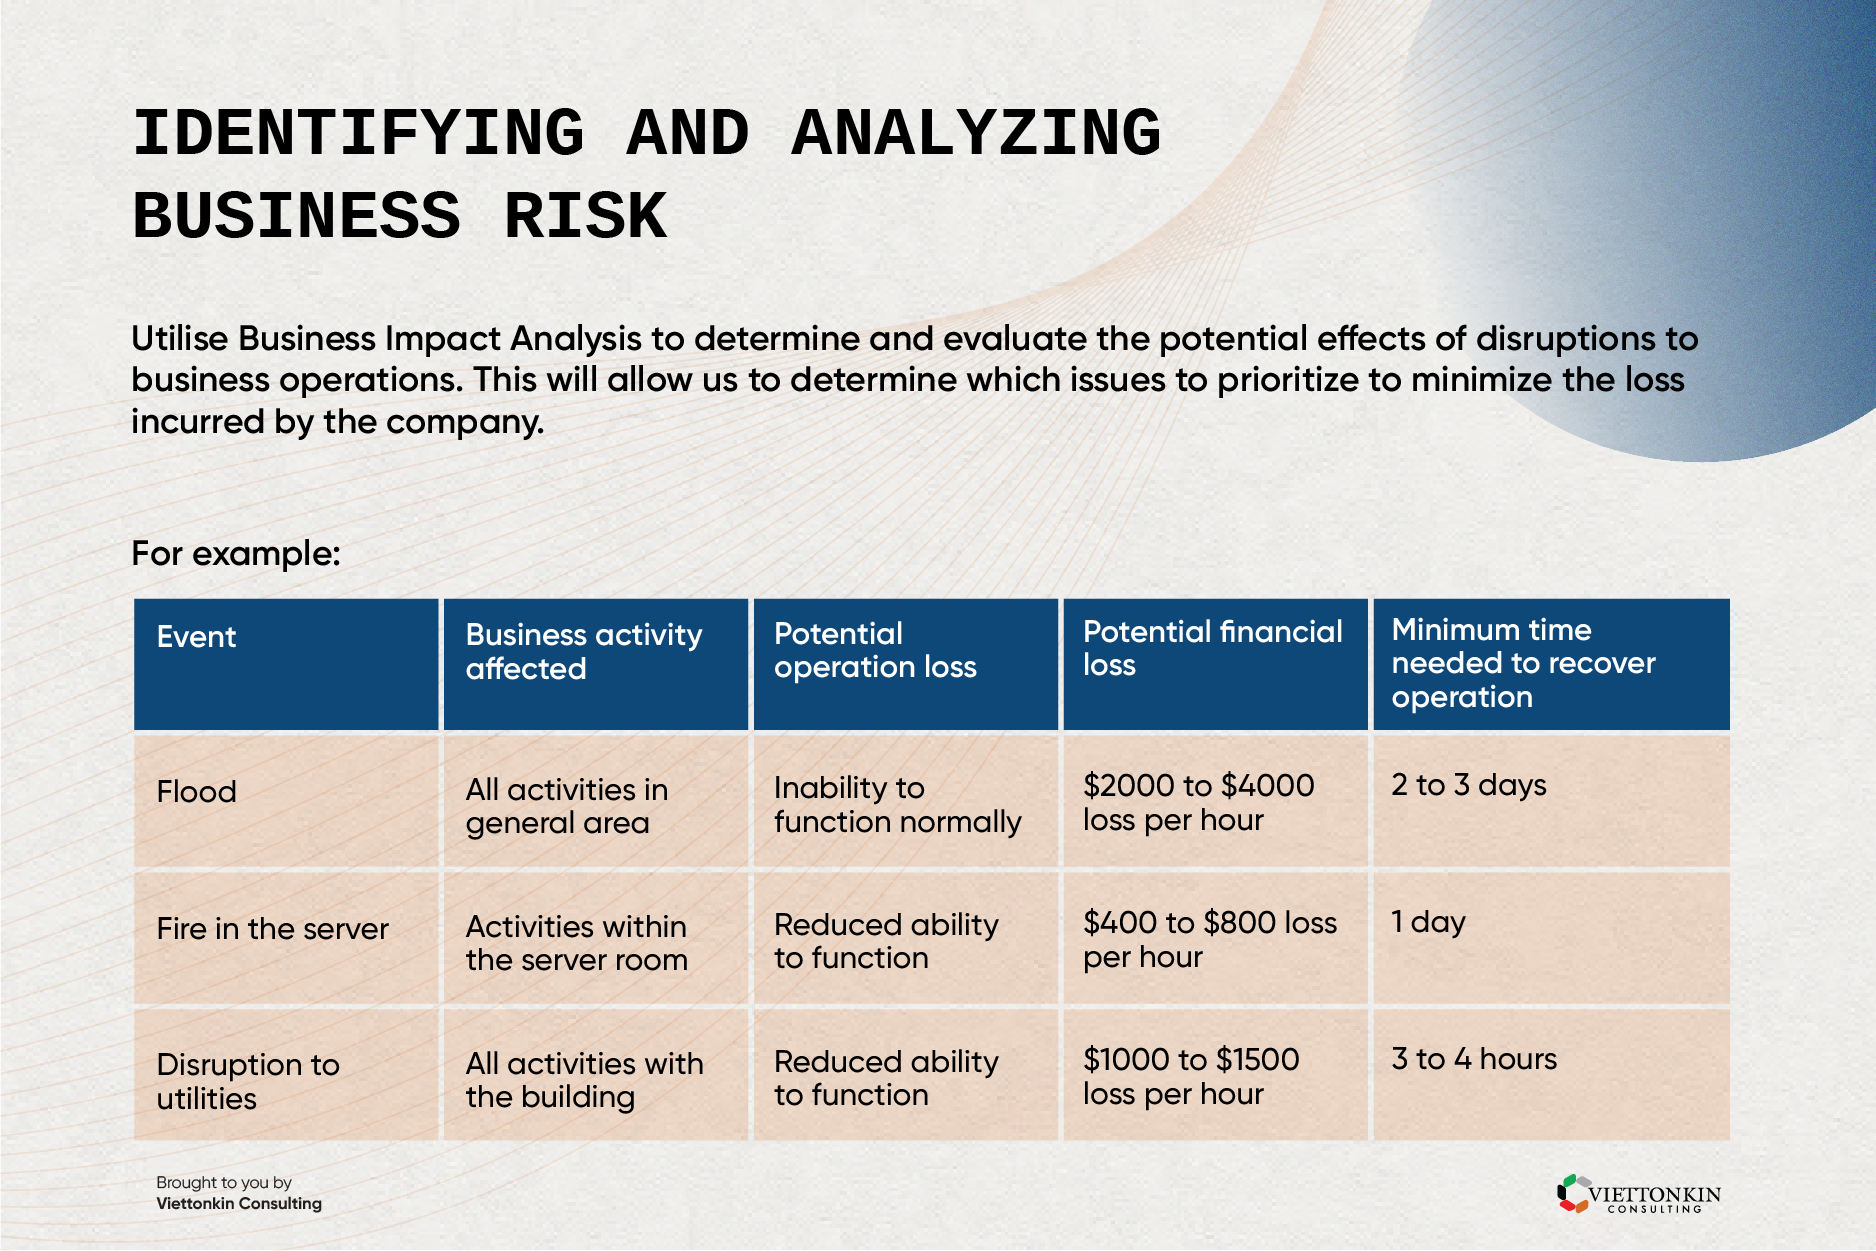 Identifying and analyzing business risk in business continuity plan